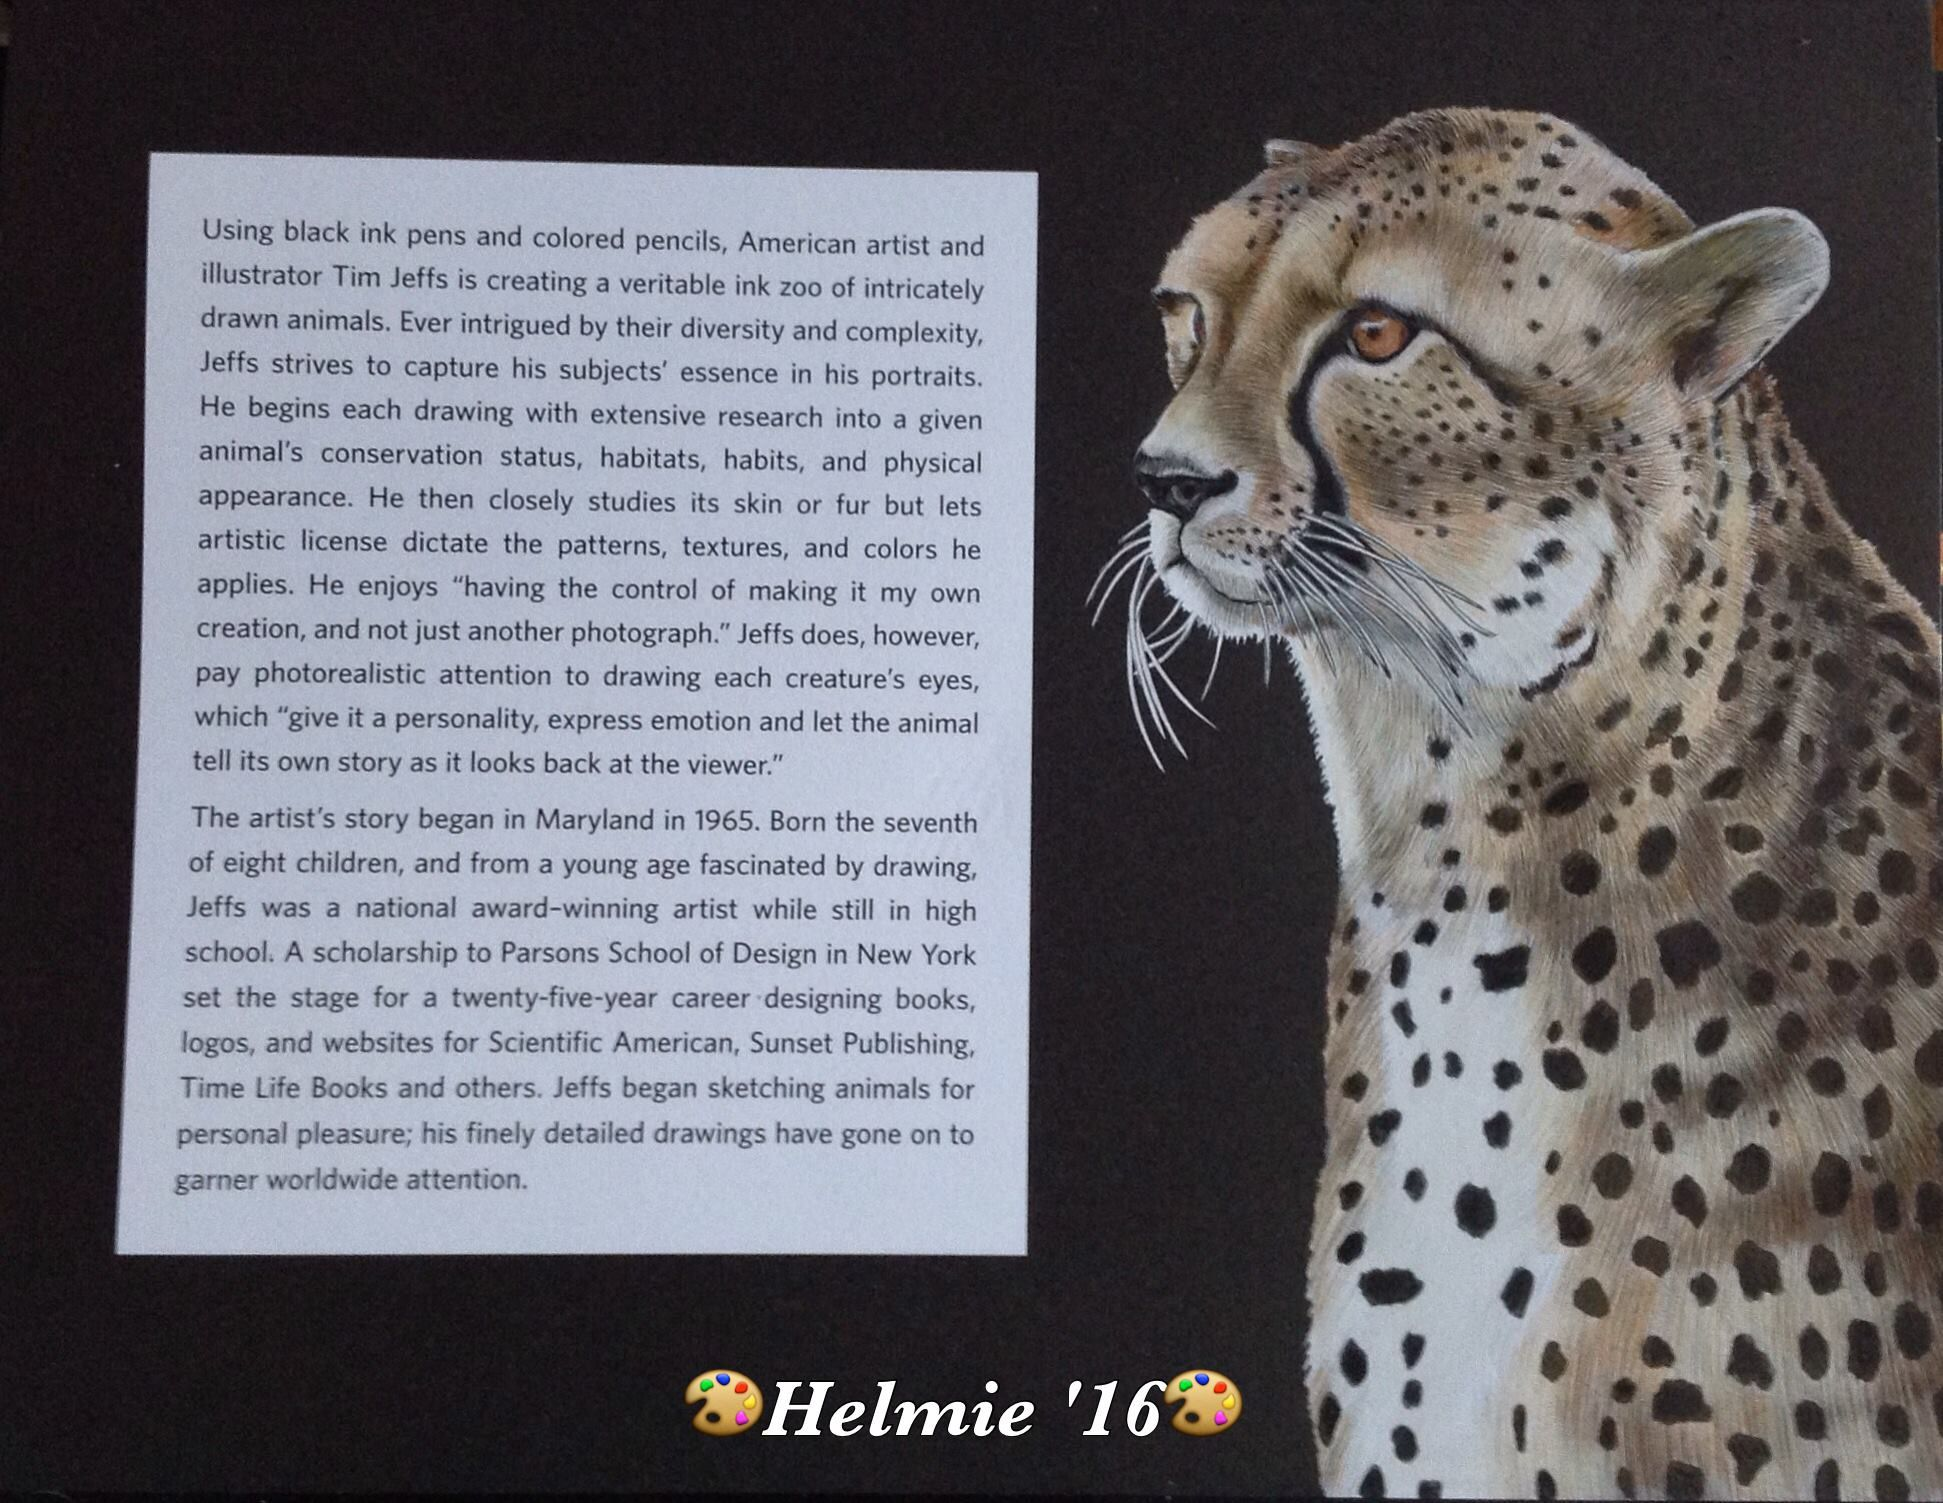 cheetah introduction page by helmie faessen animals in detail